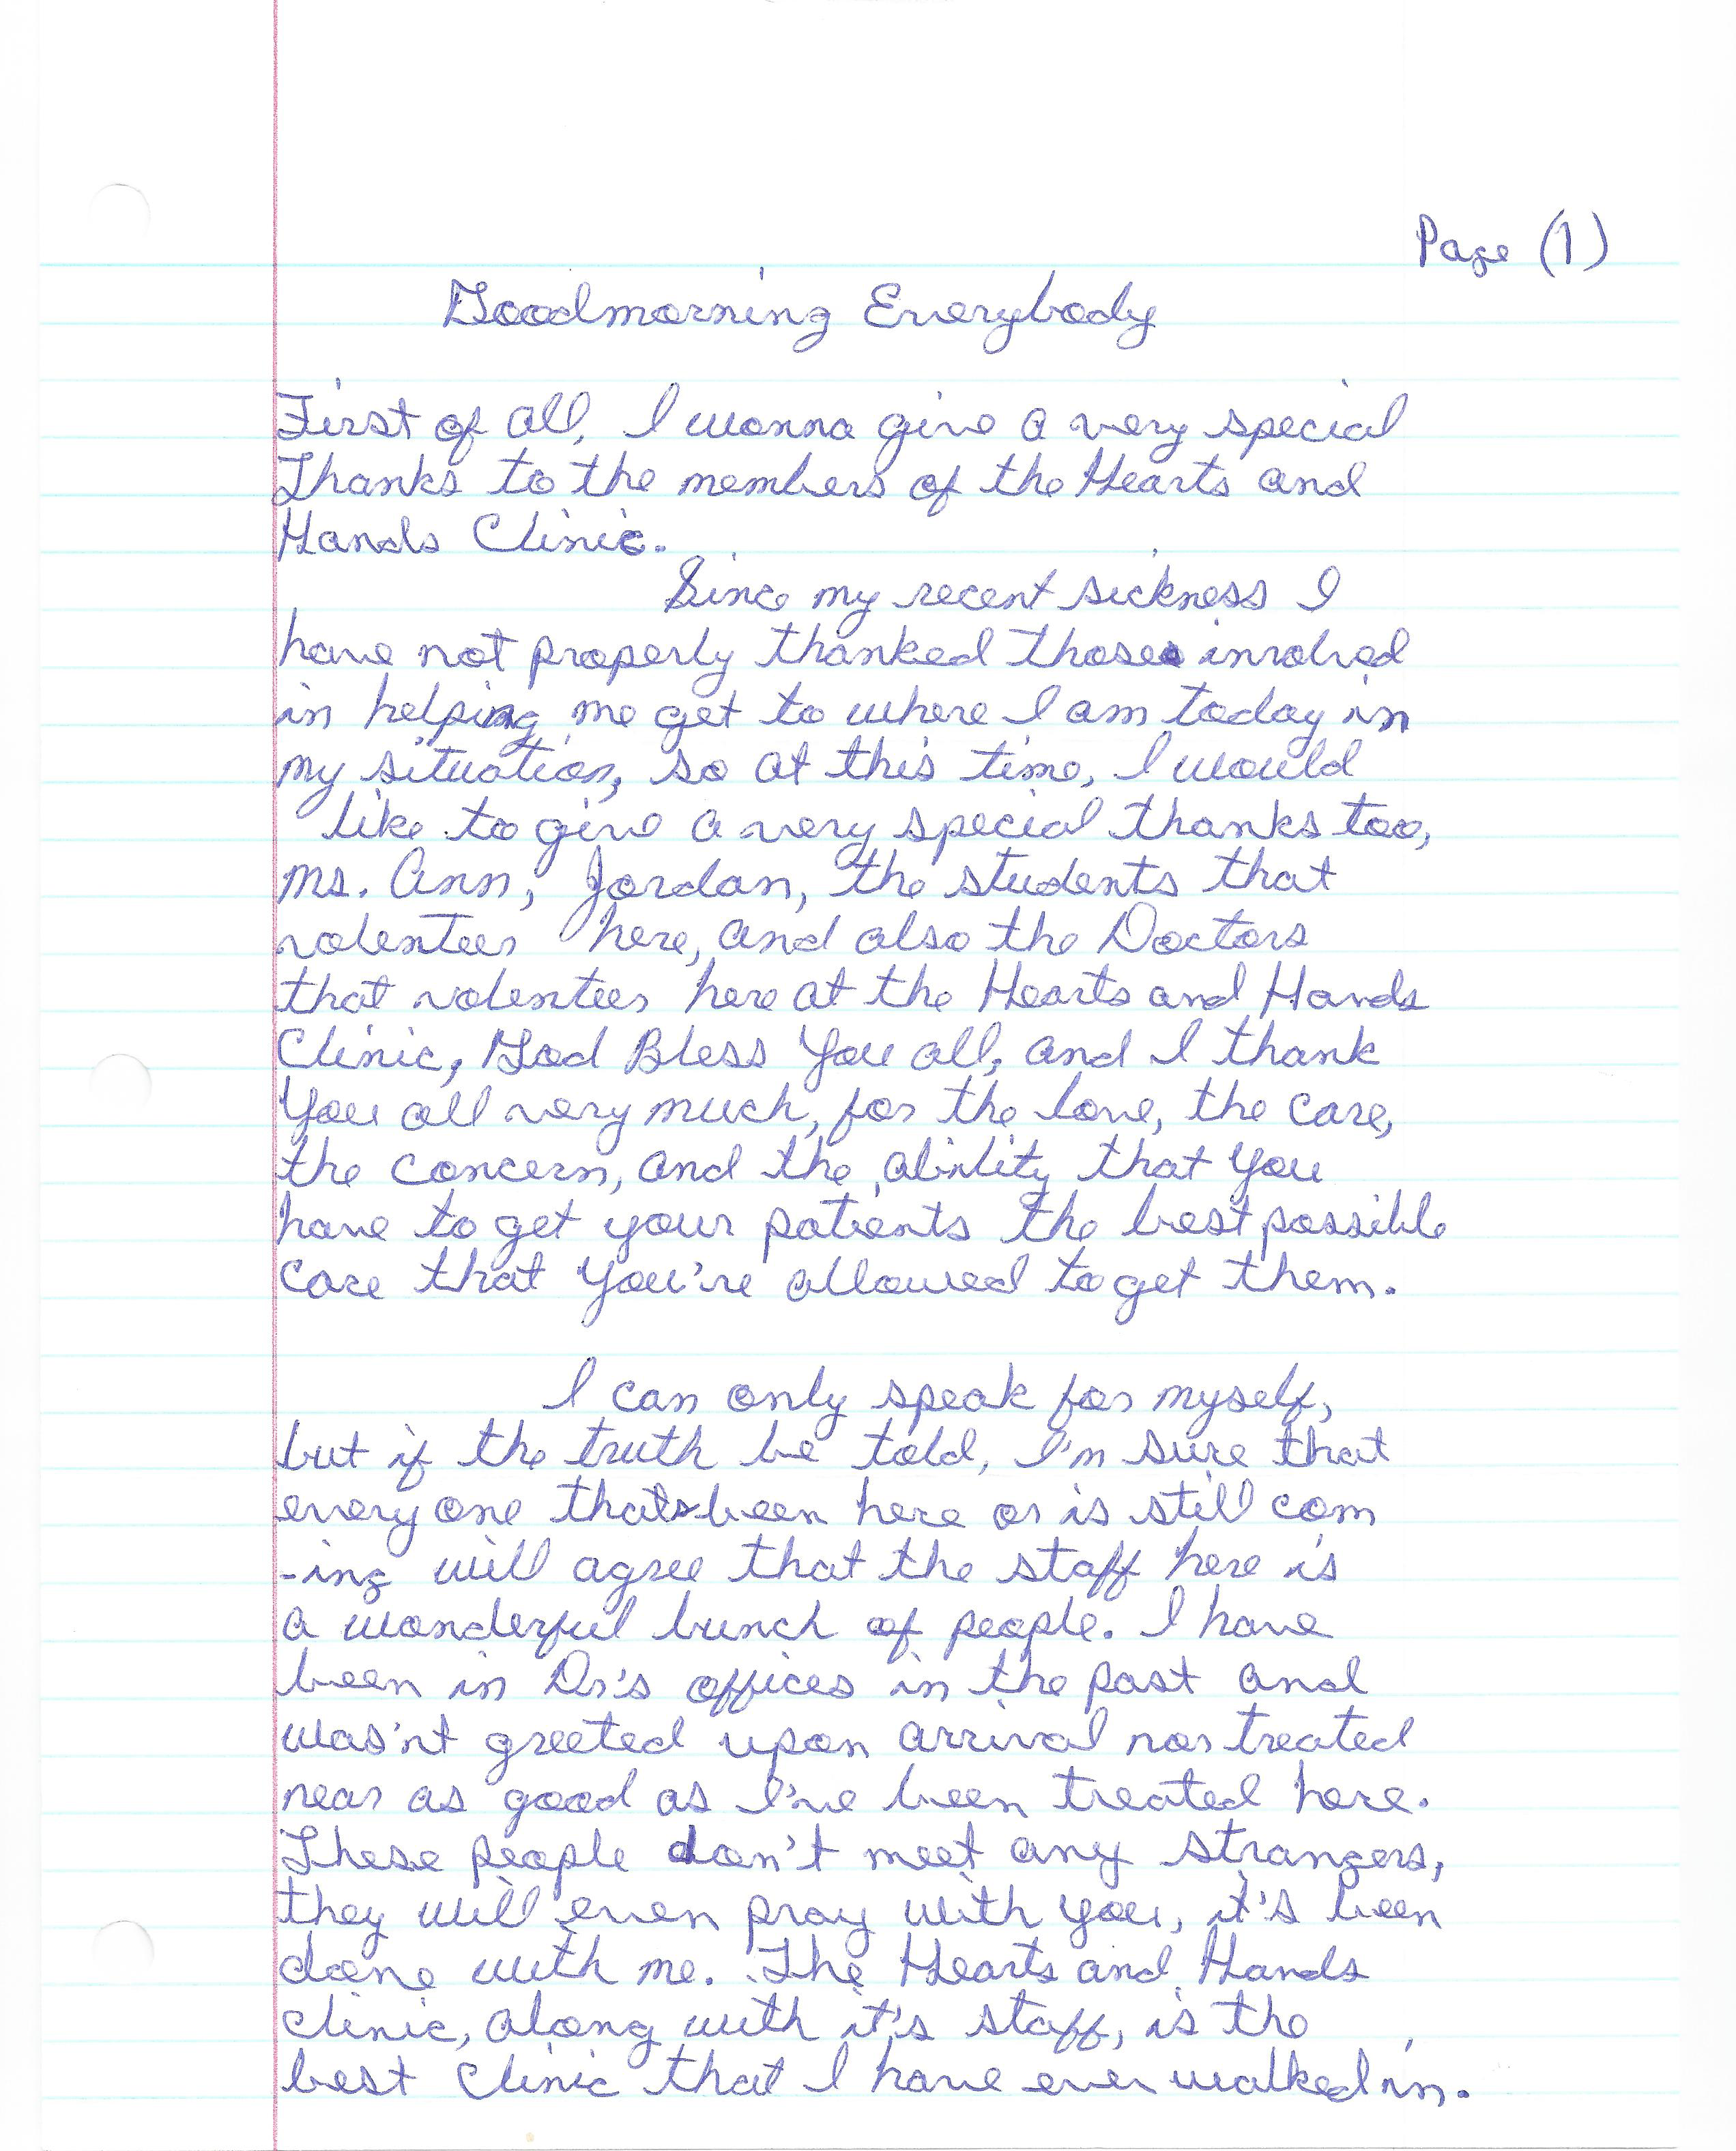 Letter from Larry-1